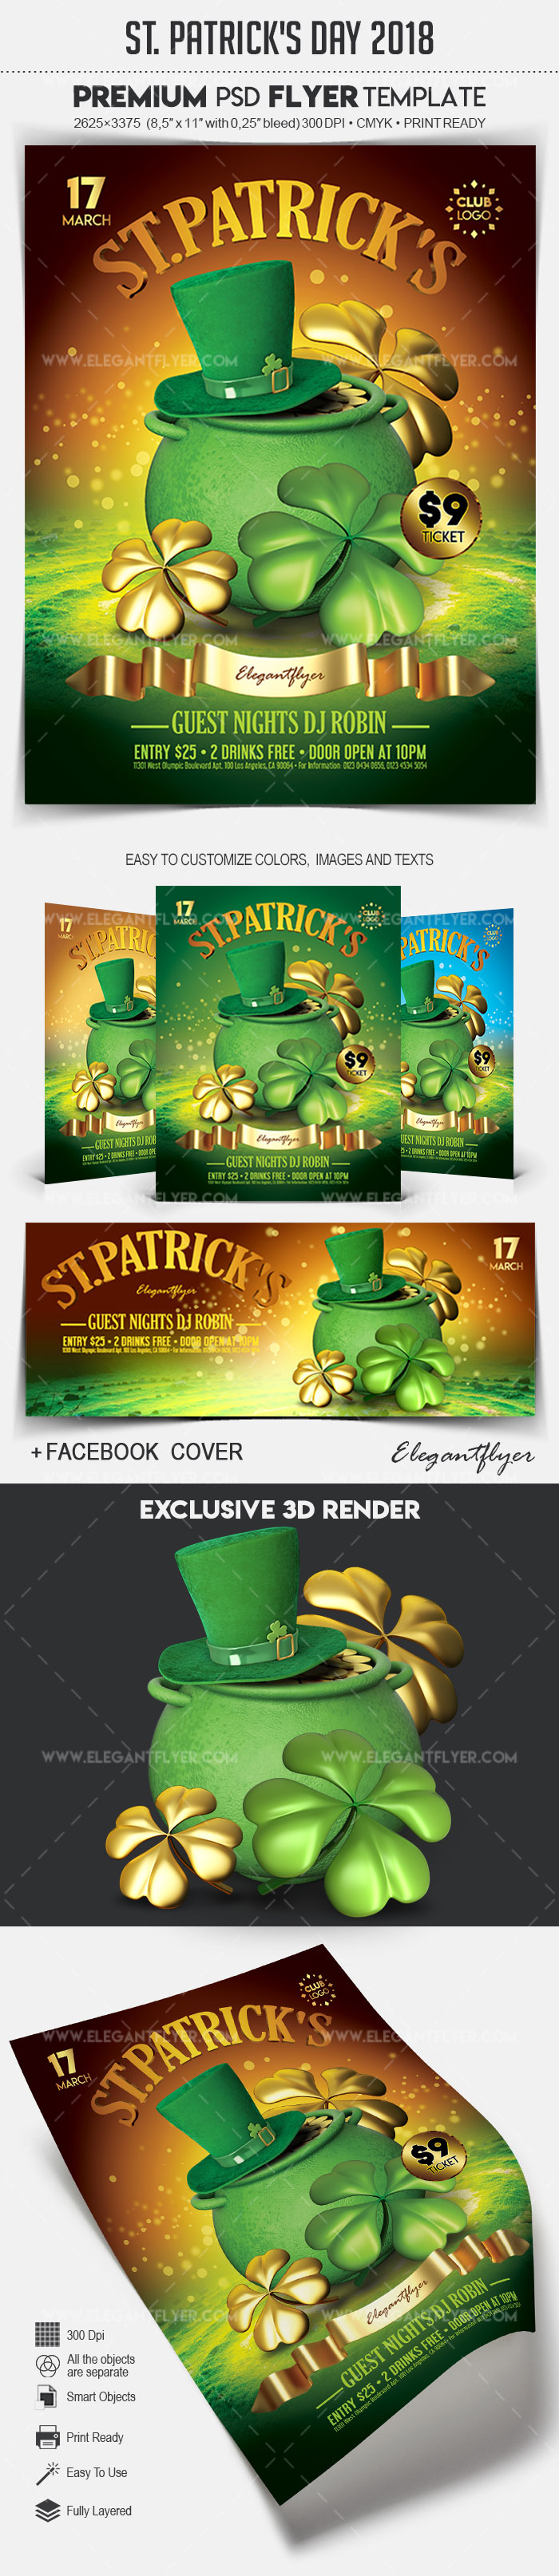 st  patrick u2019s day 2018  u2013 flyer psd template  u2013 by elegantflyer